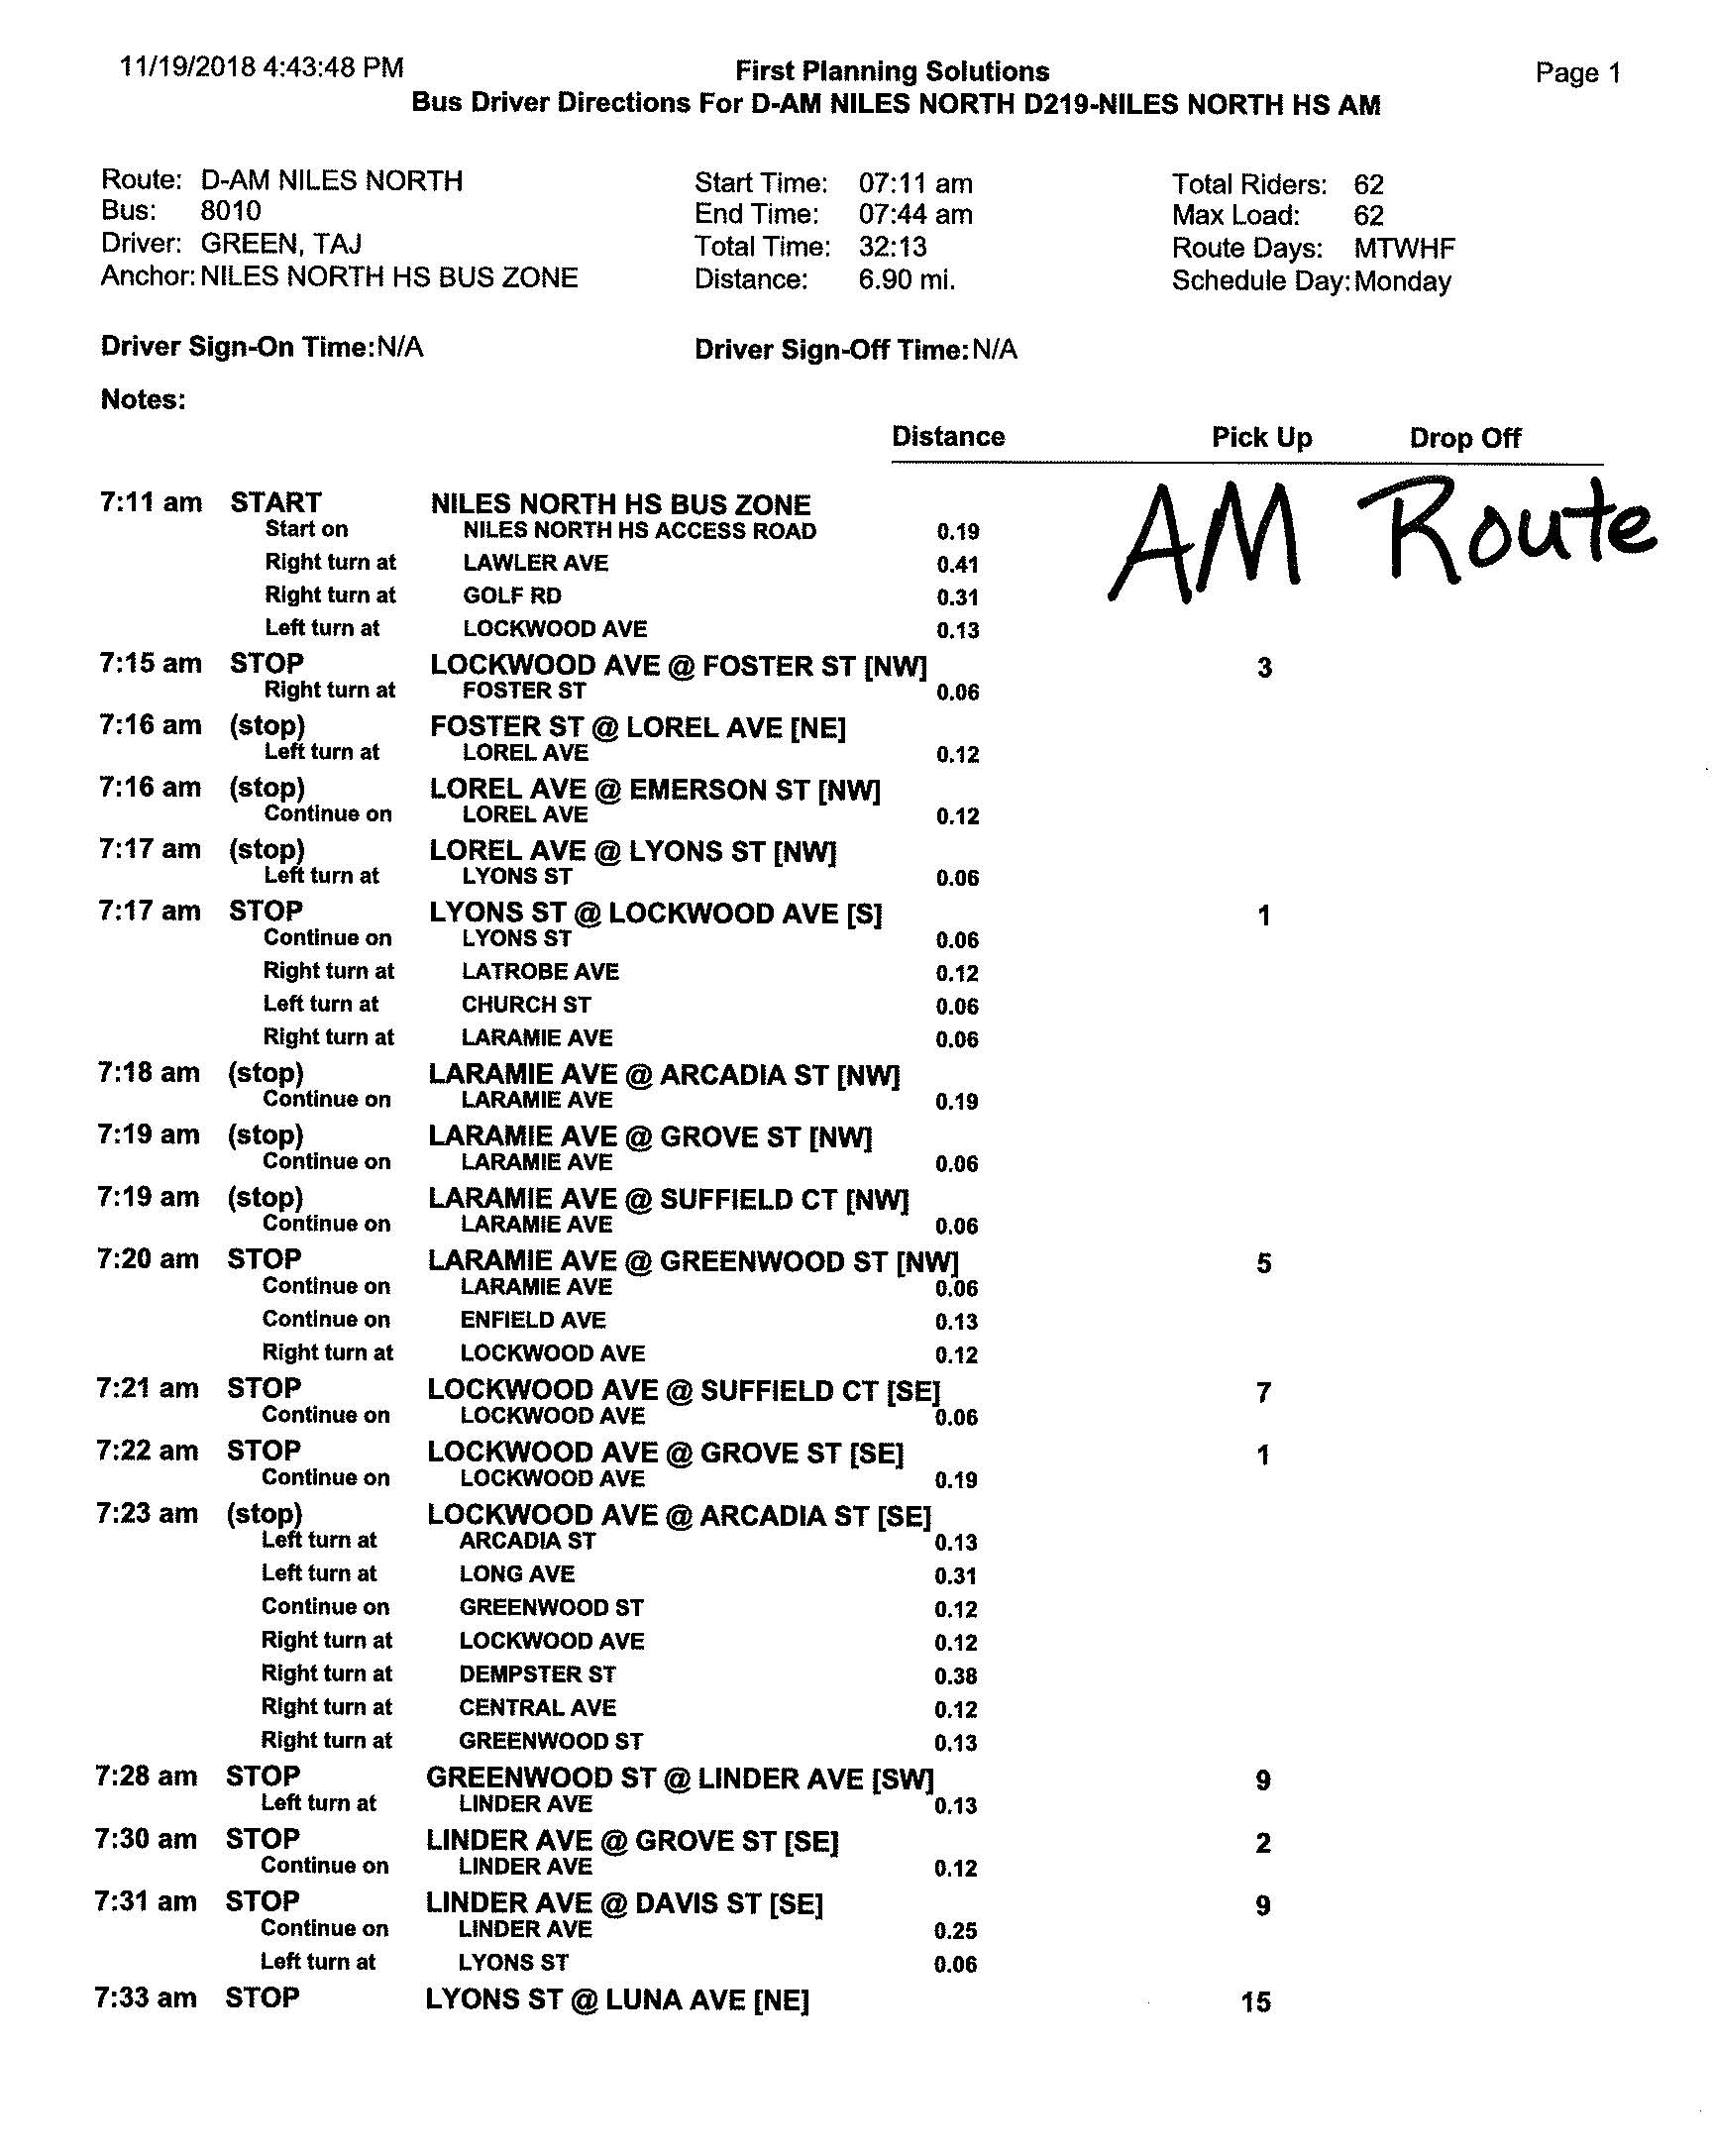 Niles North changes to bus route D (first page)